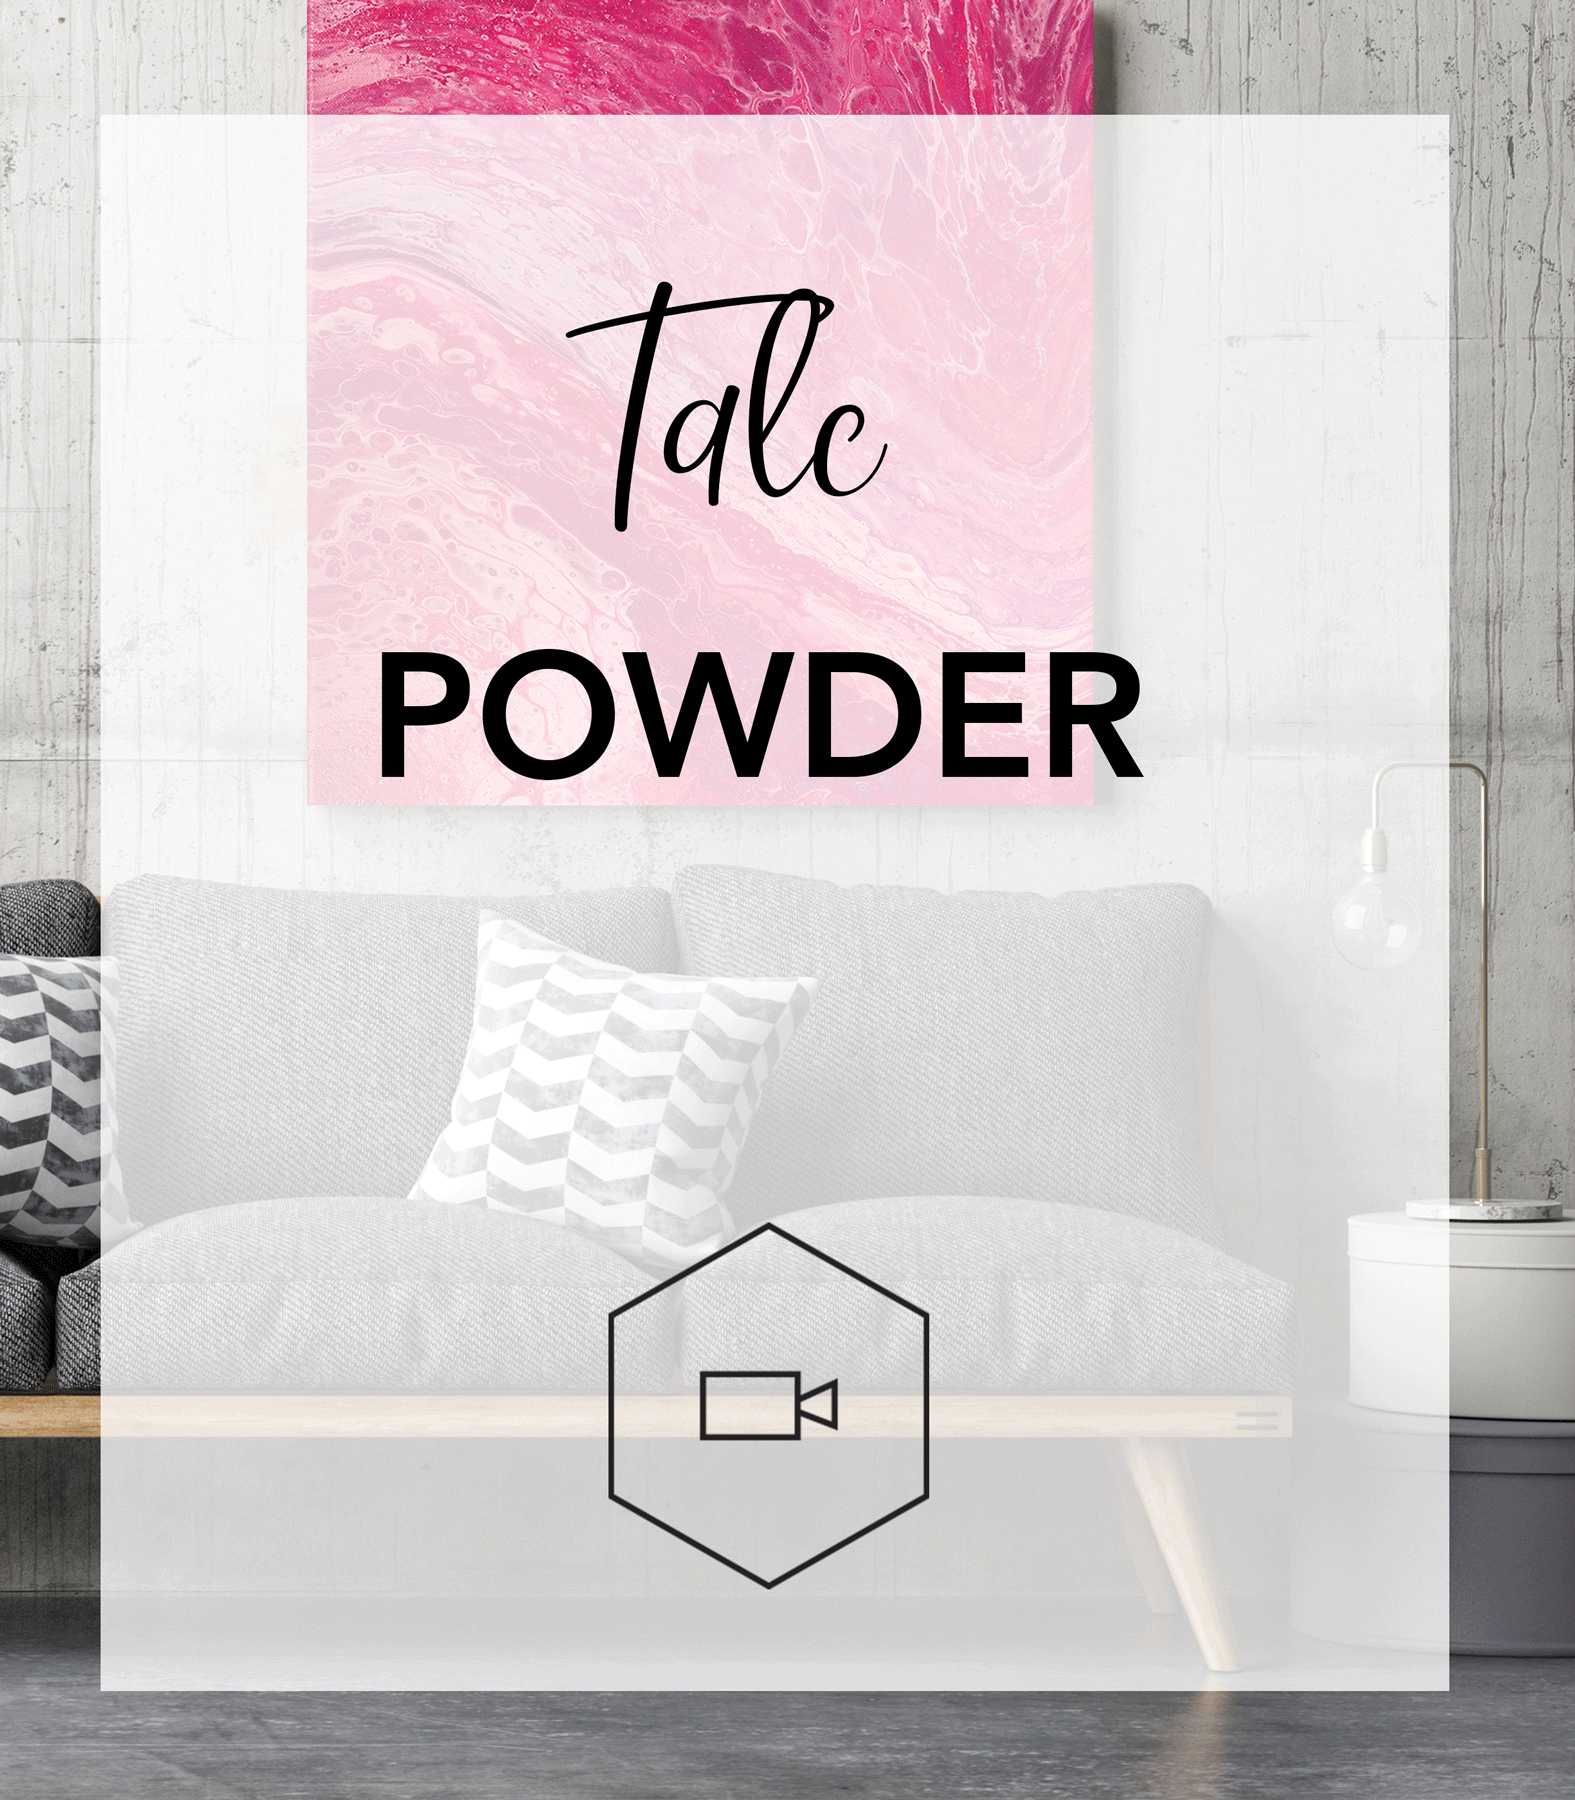 COLOR-POUR-TALC-POWDER-VIDEO-GRAPHIC